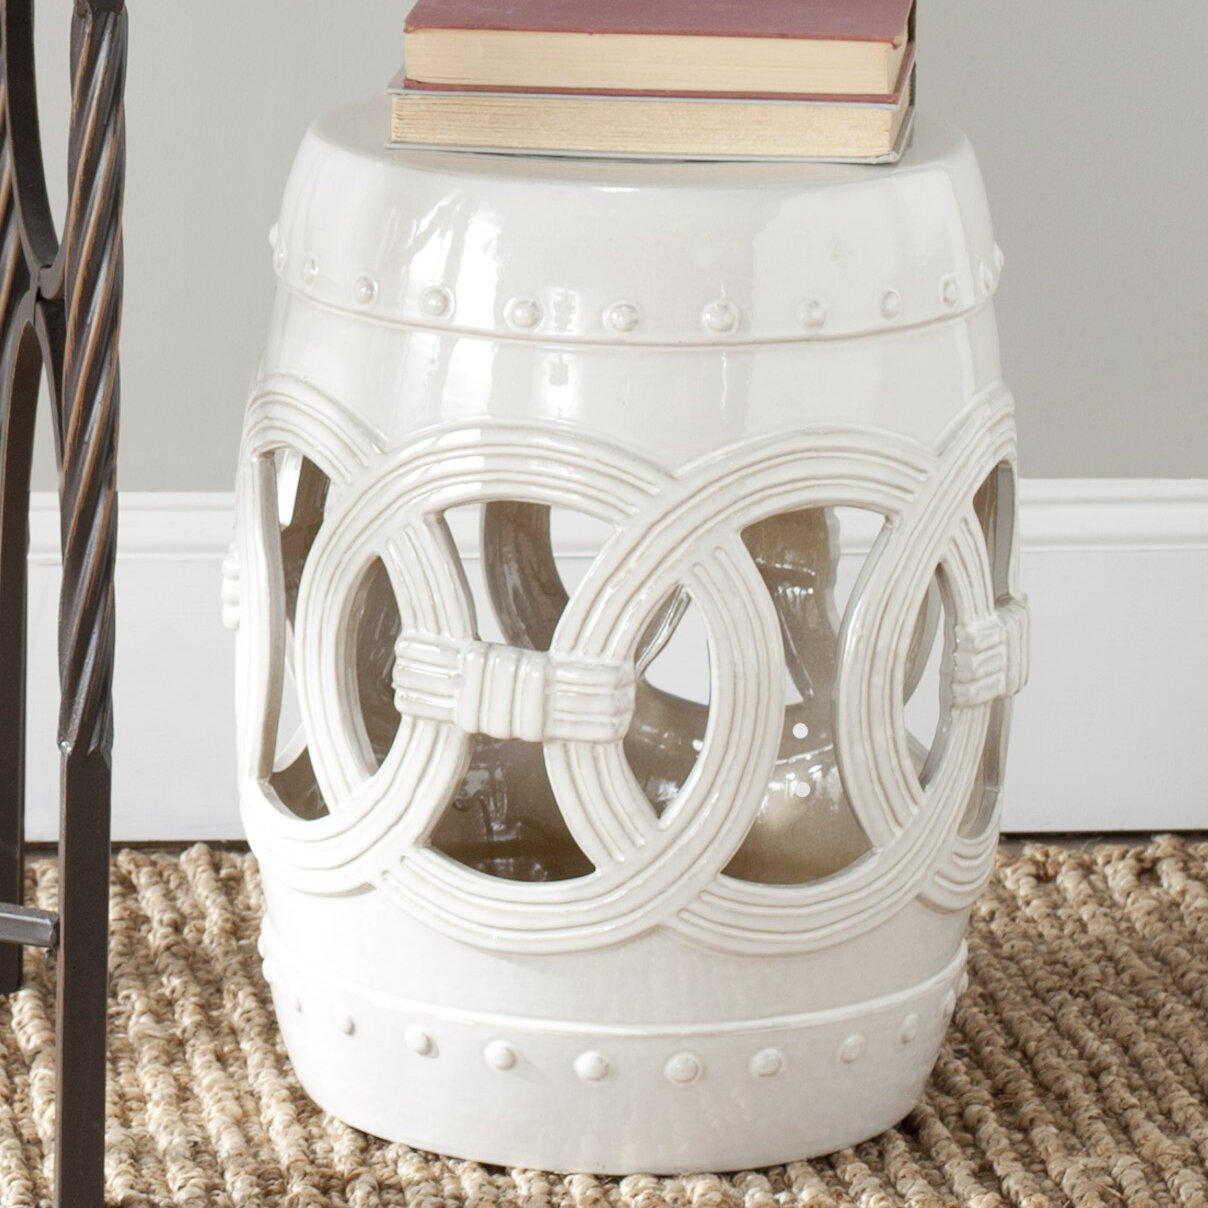 Garden White Accent Stools You'Ll Love In 2020 | Wayfair With Regard To Wiese Cherry Blossom Ceramic Garden Stools (View 15 of 25)